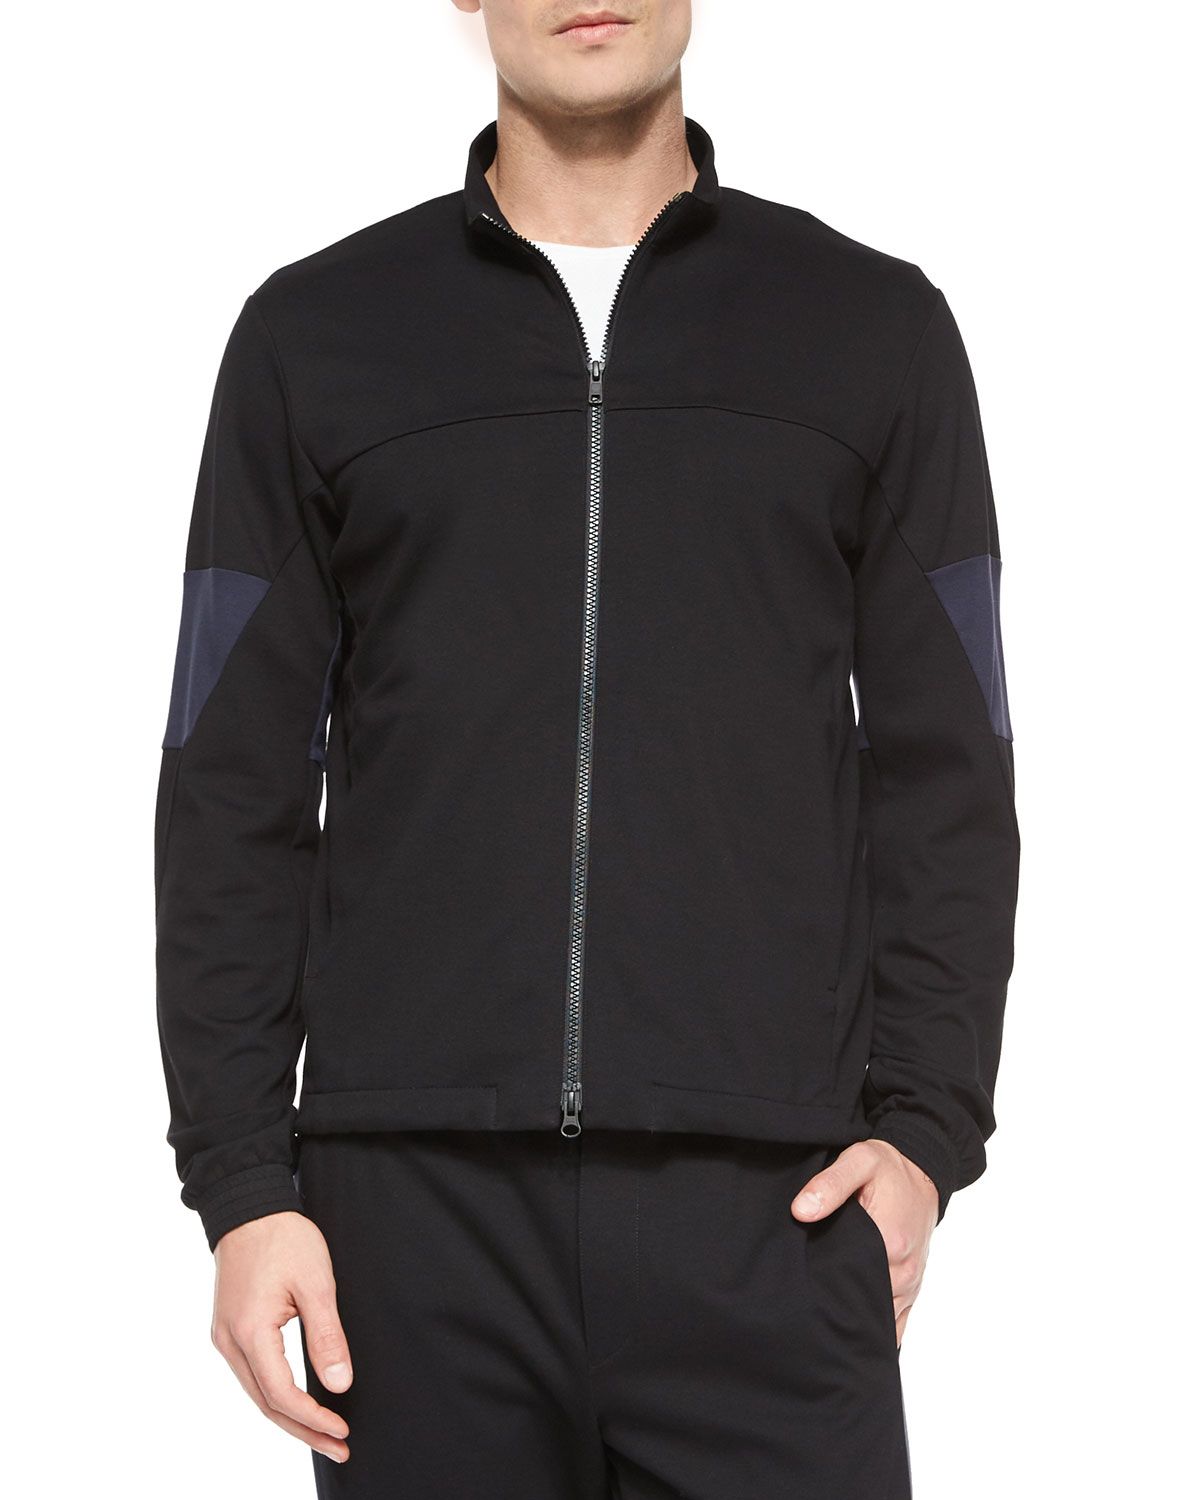 e0d3172b8835 Lyst - Theory Full-zip Track Jacket in Black for Men